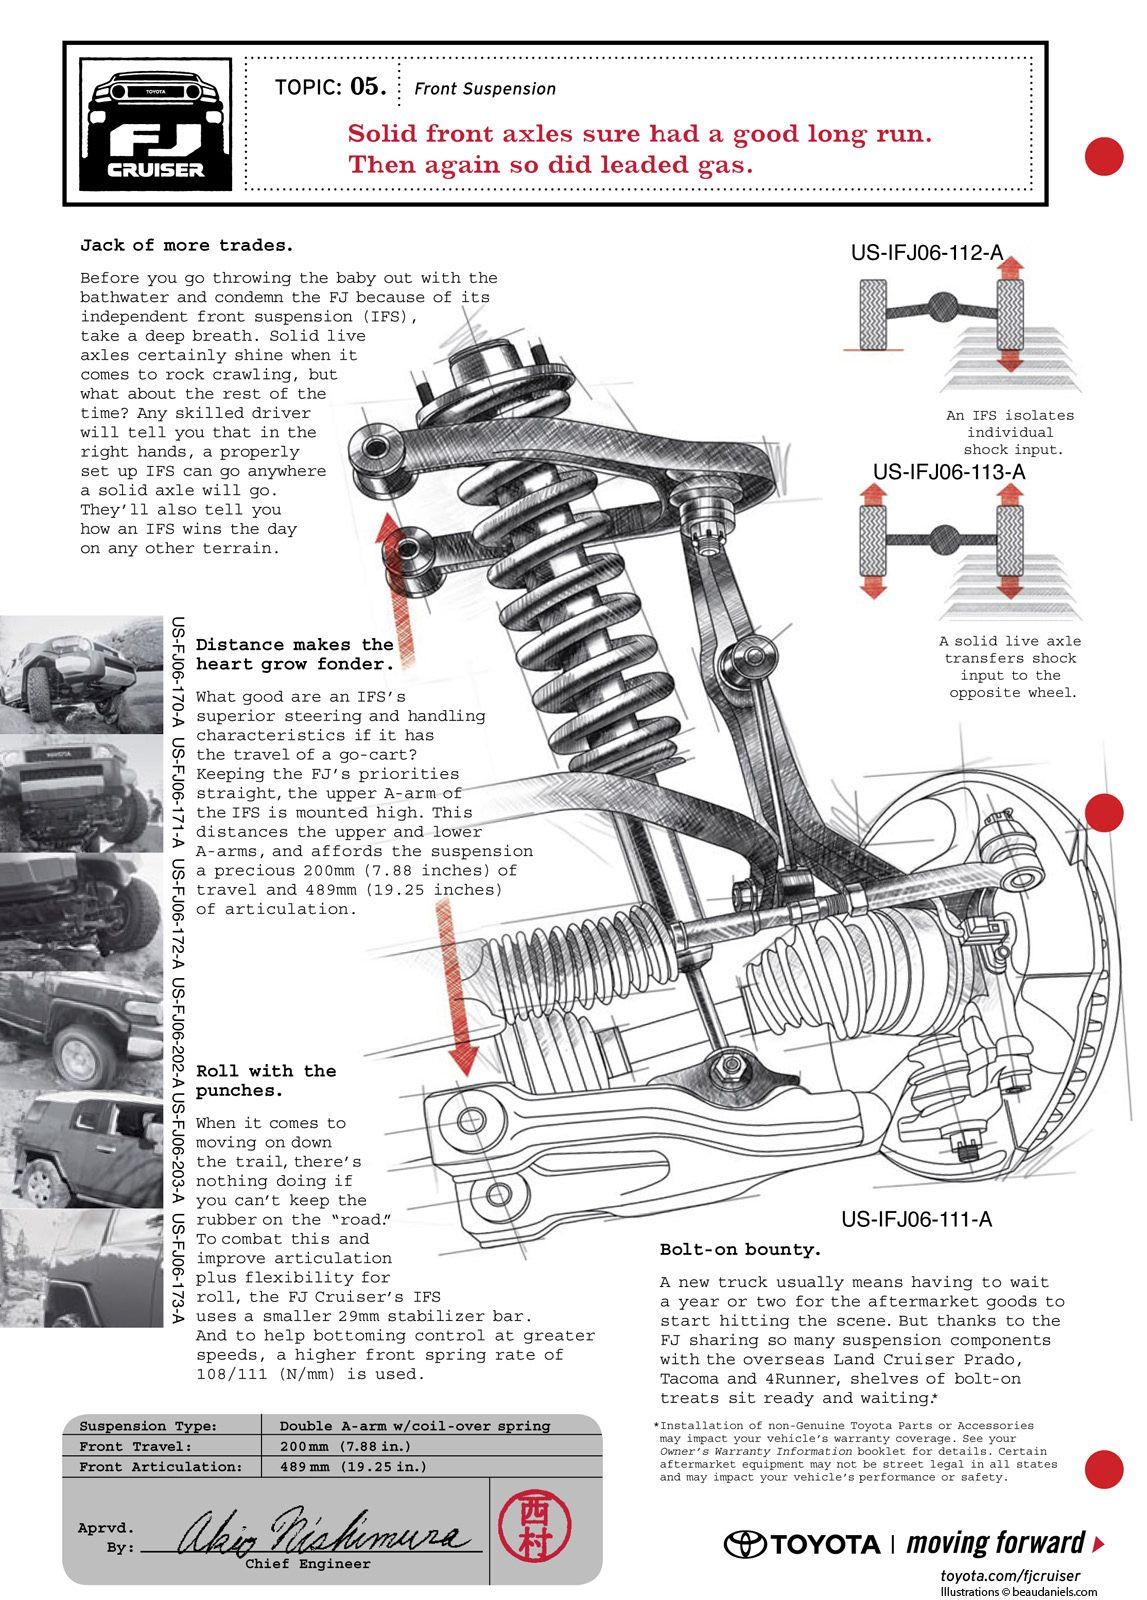 toyota fj cruiser engine diagram wiring diagram centre 2007 toyota fj cruiser engine diagram [ 1147 x 1600 Pixel ]